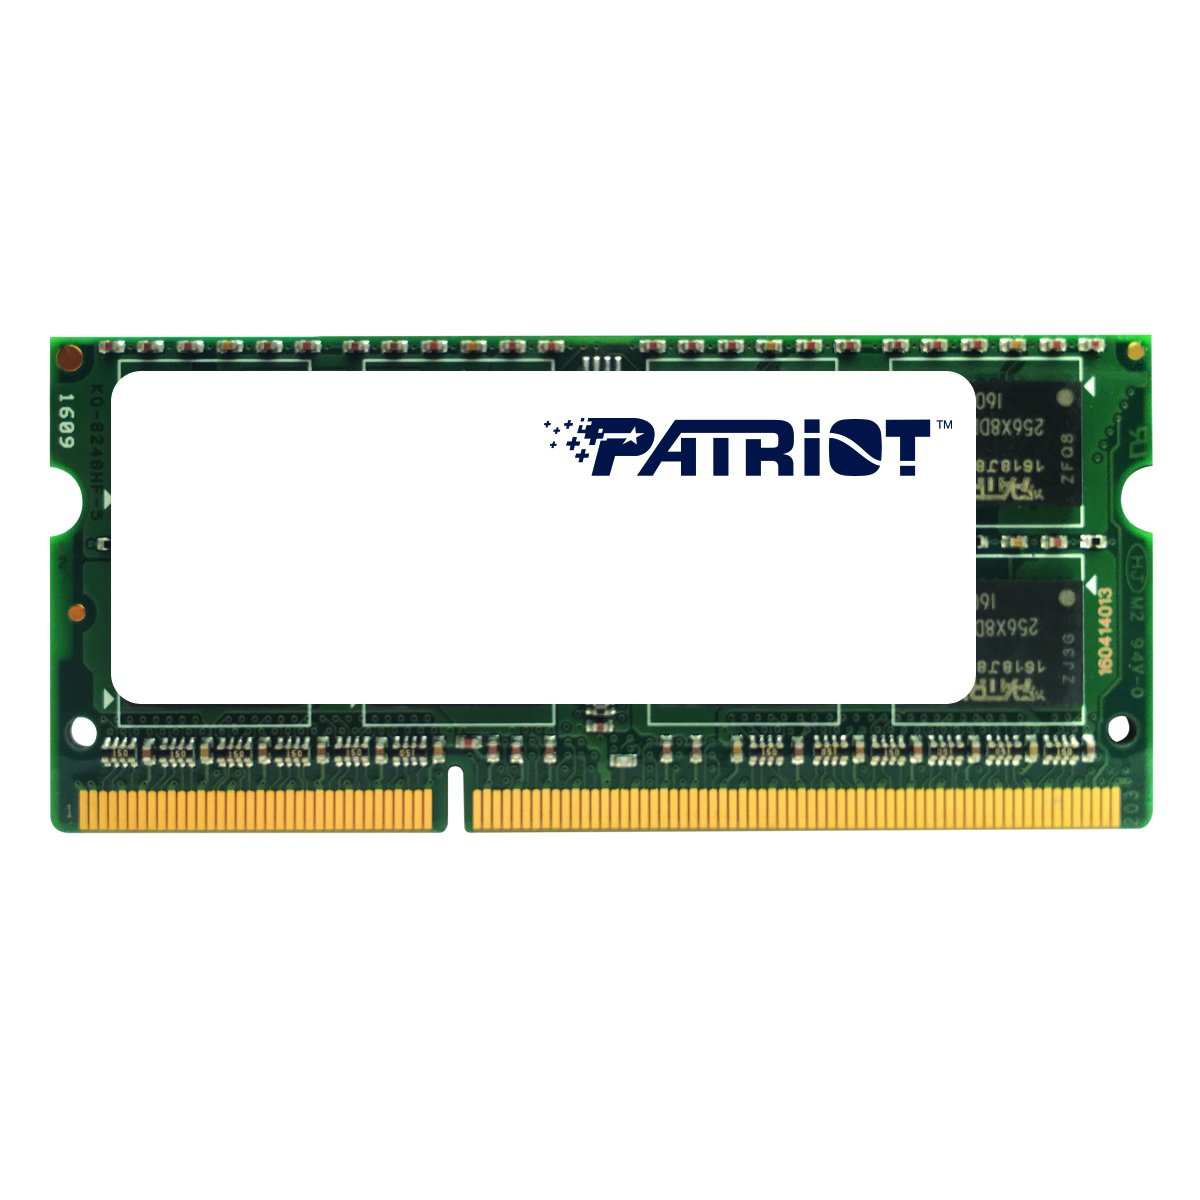 Patriot 1.35V 8GB DDR3 1600MHz PC3-12800 CL11 SODIMM Memory PSD38G1600L2S by Patriot